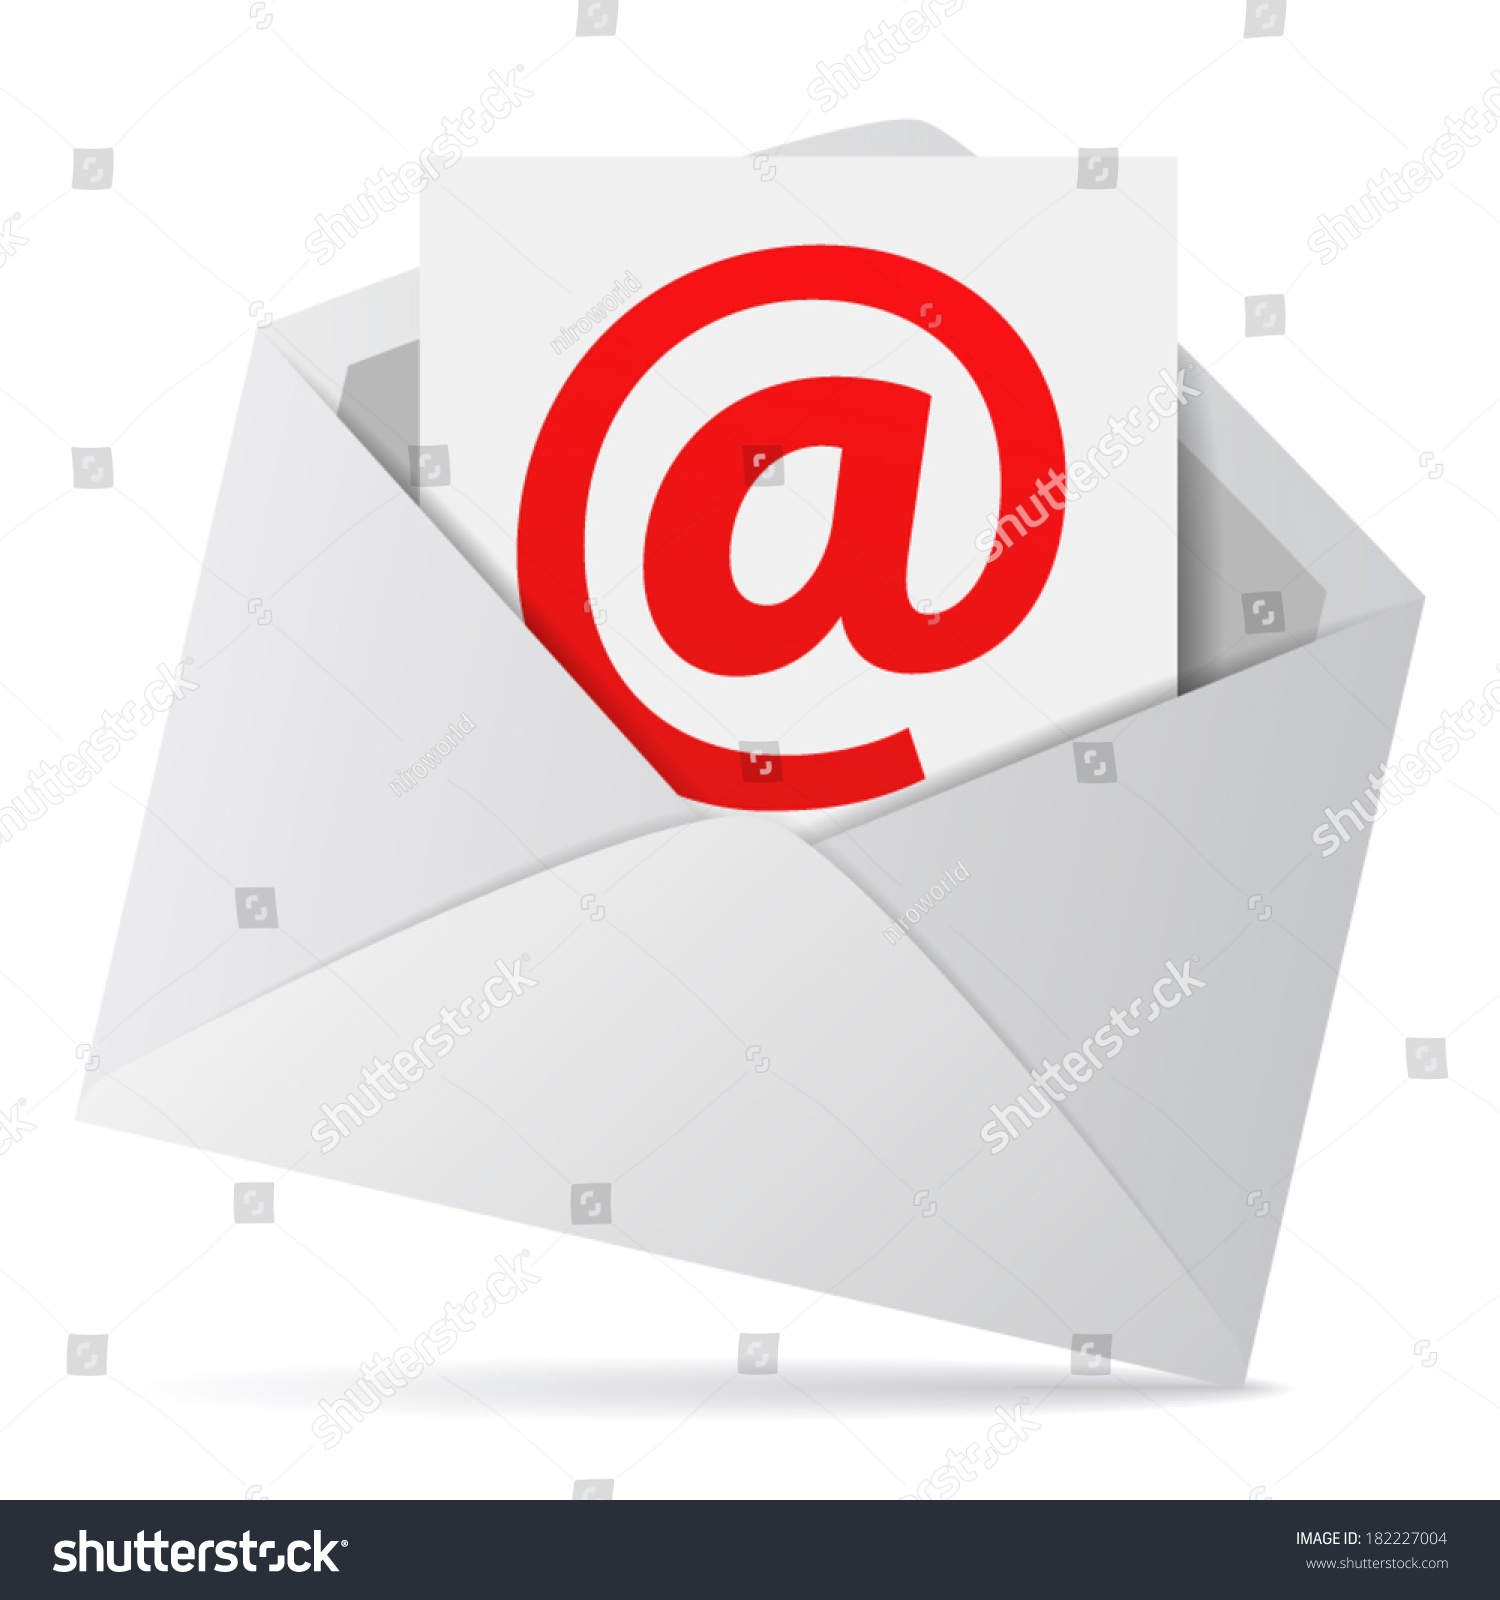 Business Contact: Internet Web Business Contact Us Concept Stock Vector